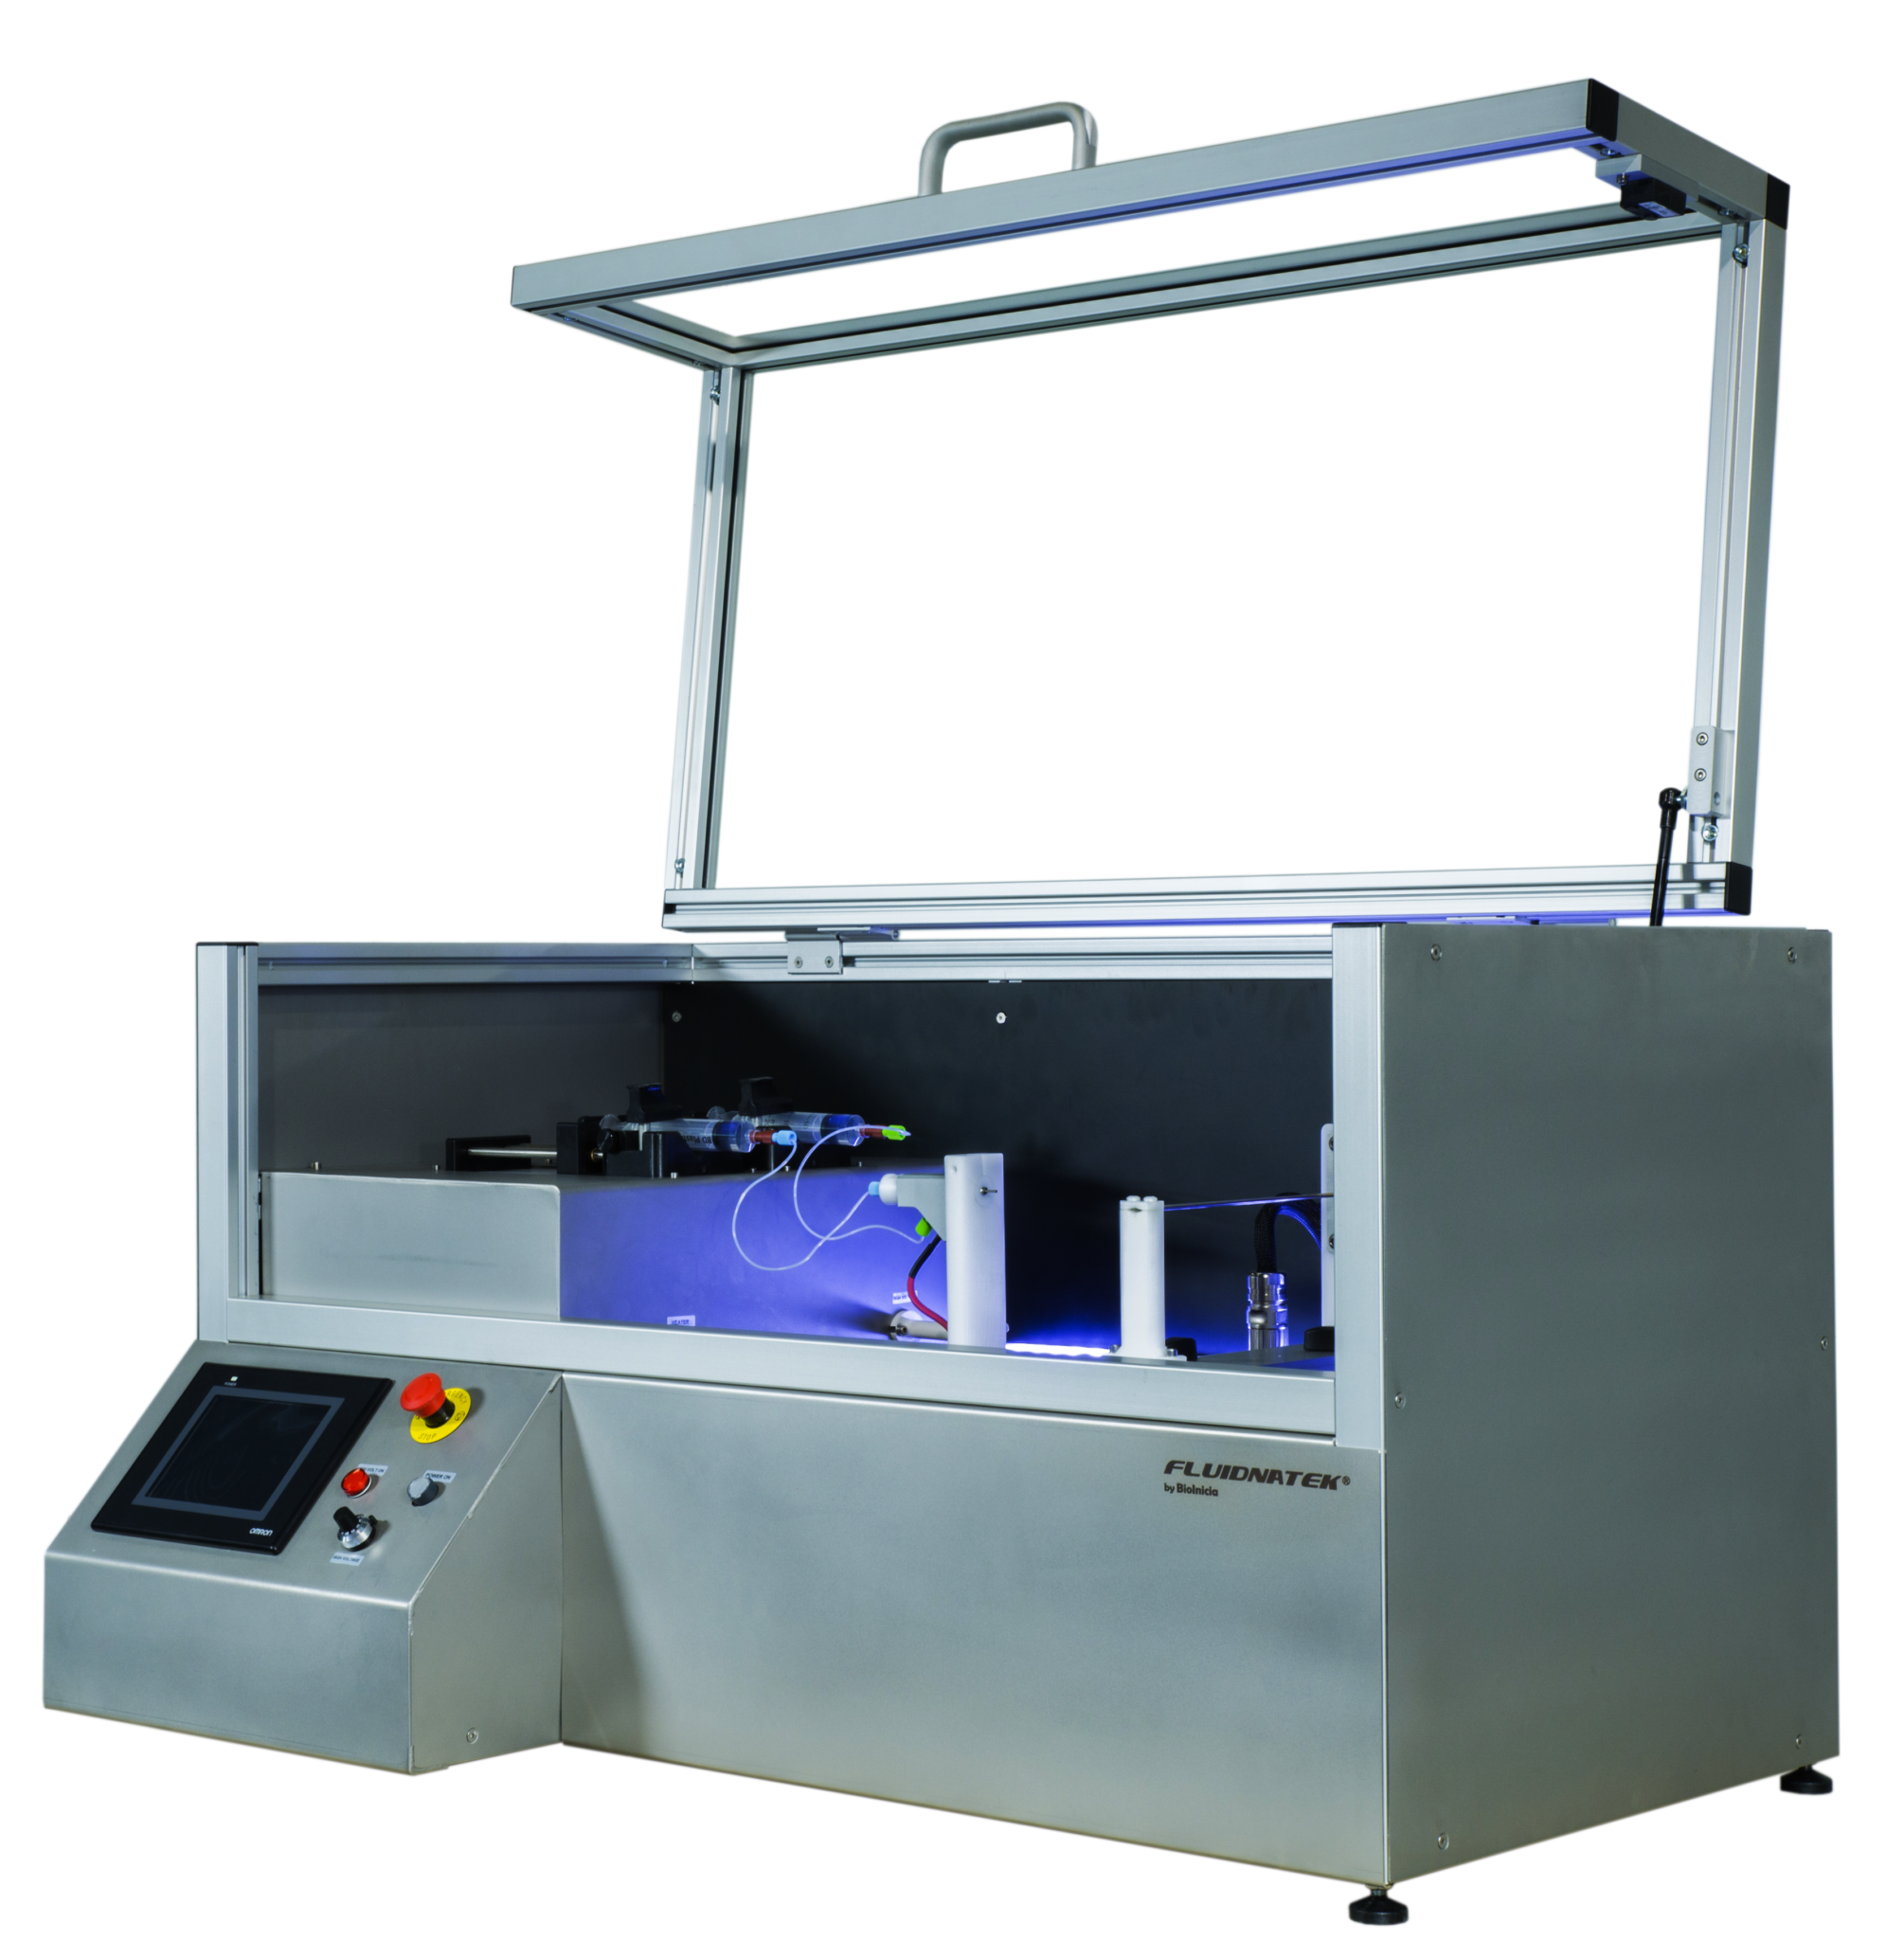 Fluidnatek LE-10 Bioinicia electrospinning machine